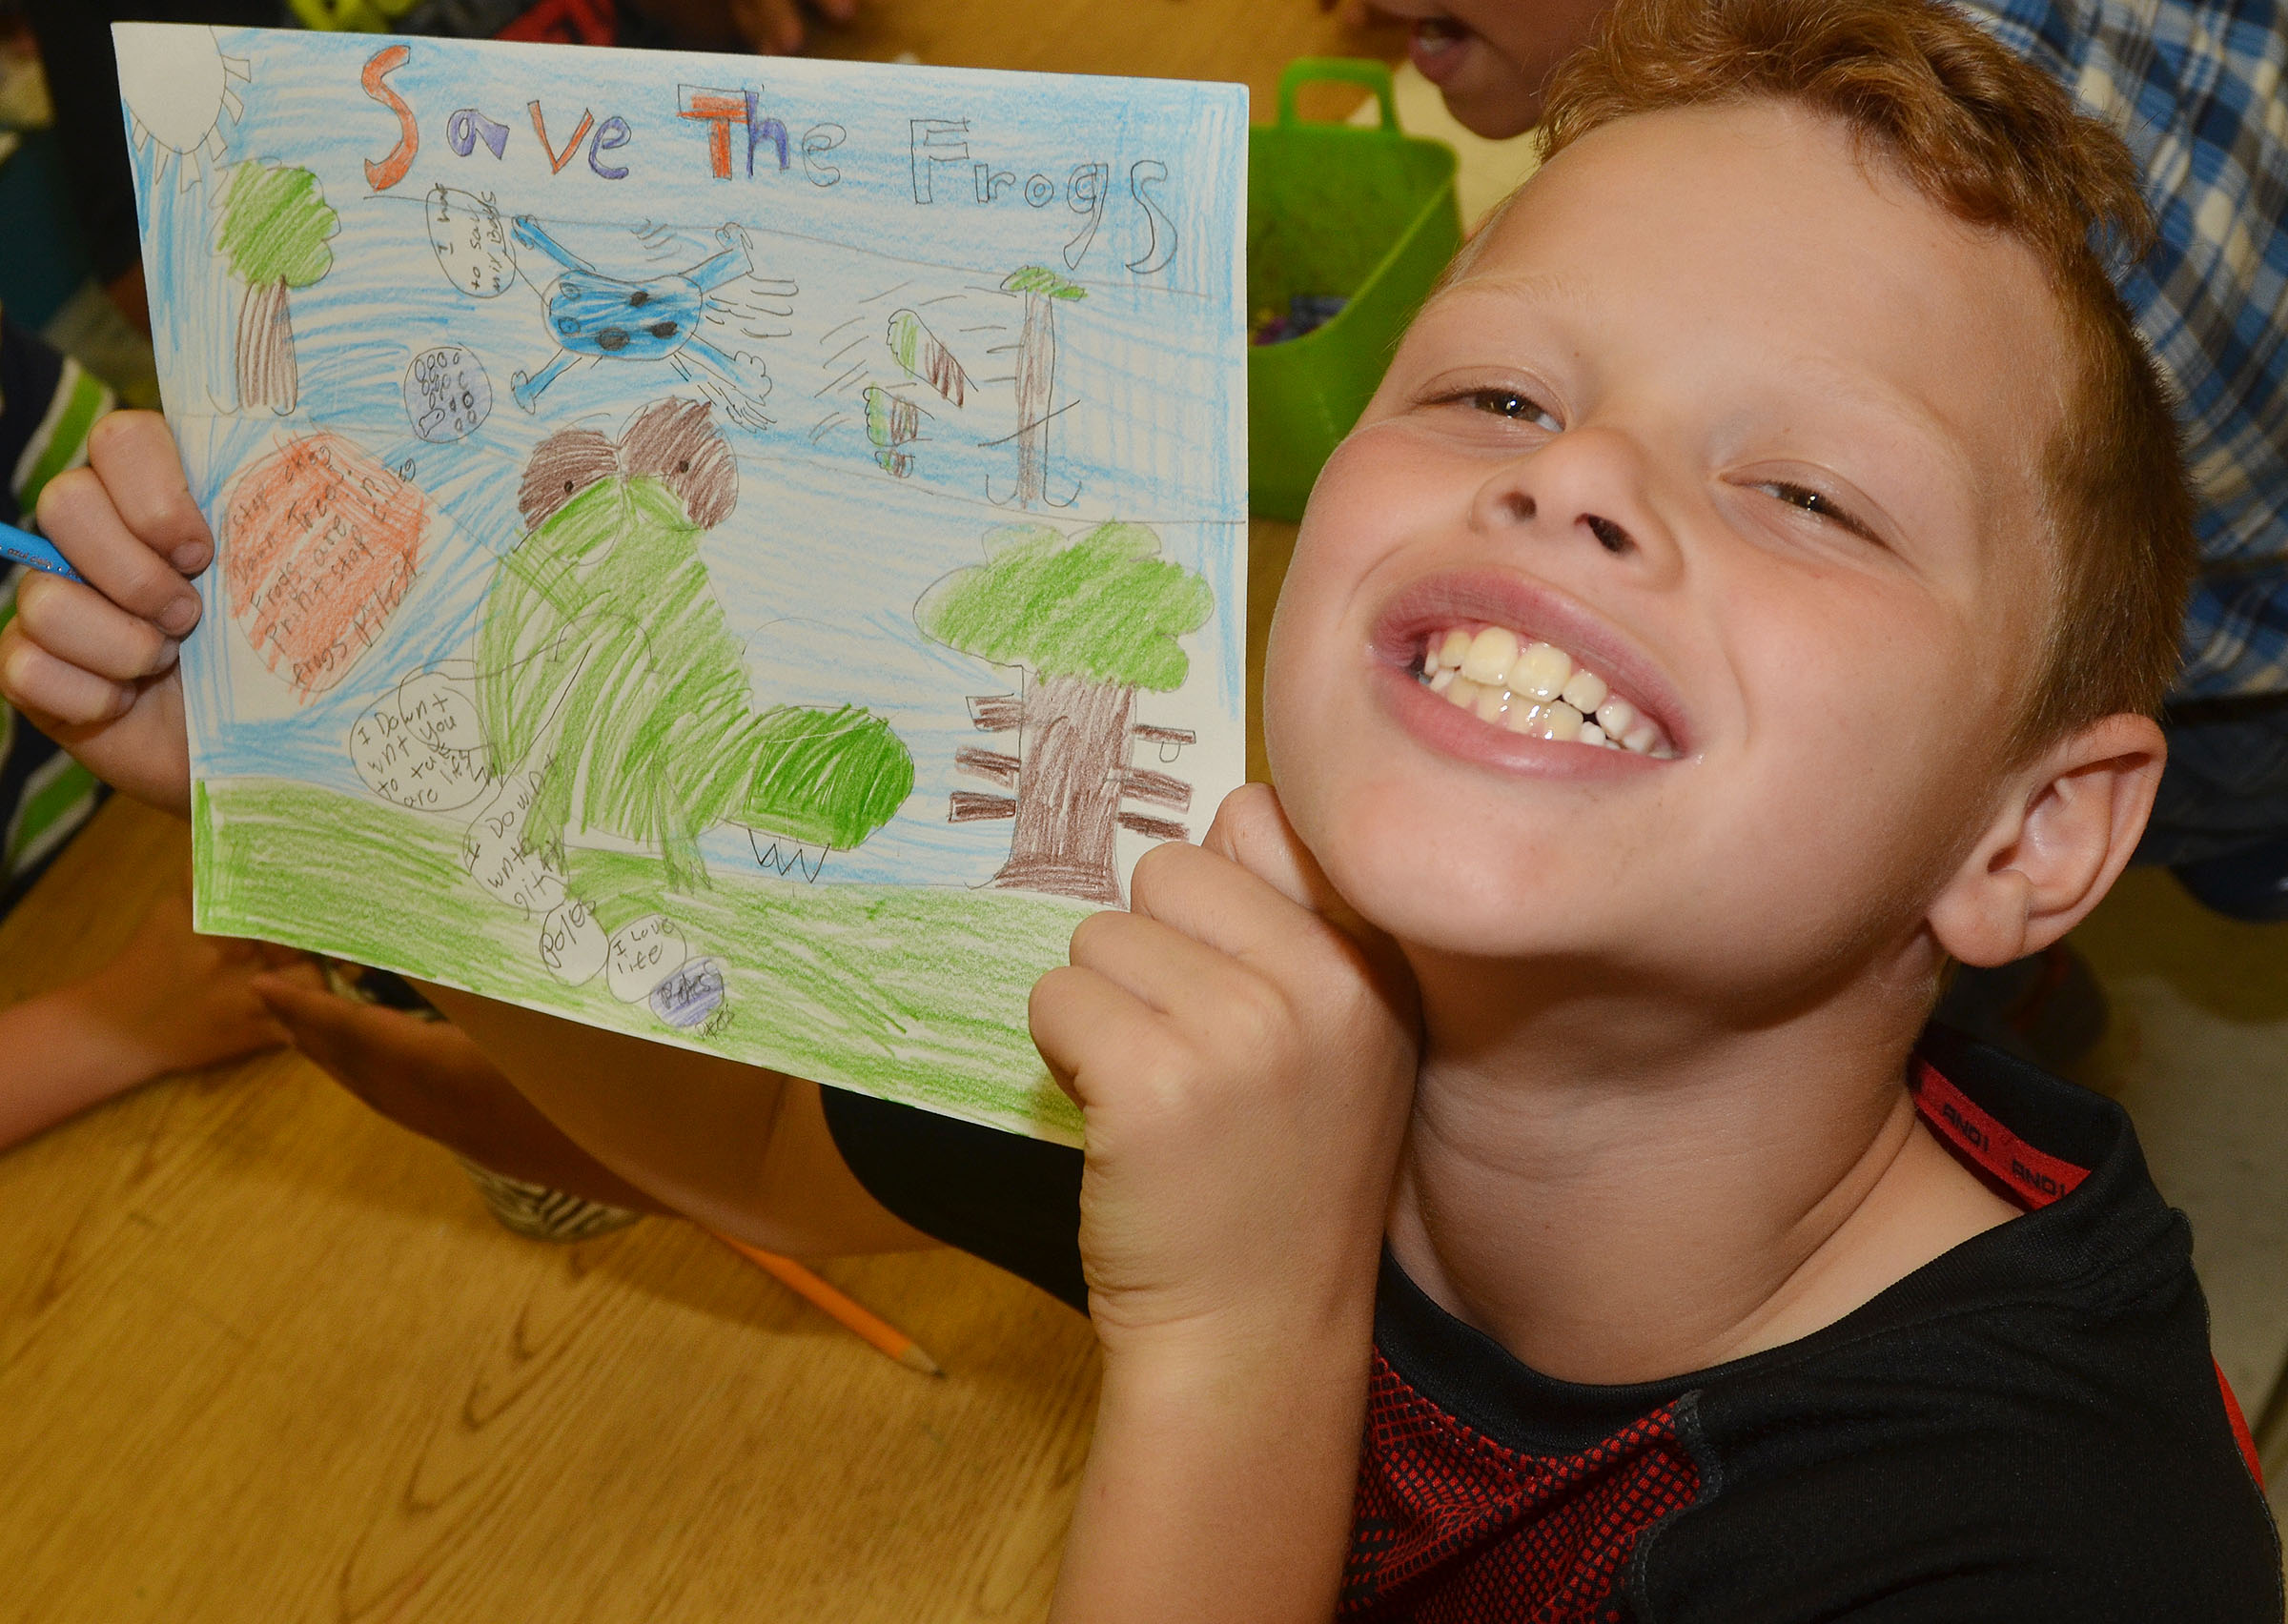 CES third-grader Demetrious Dickens holds his completed Save the Frogs contest artwork.